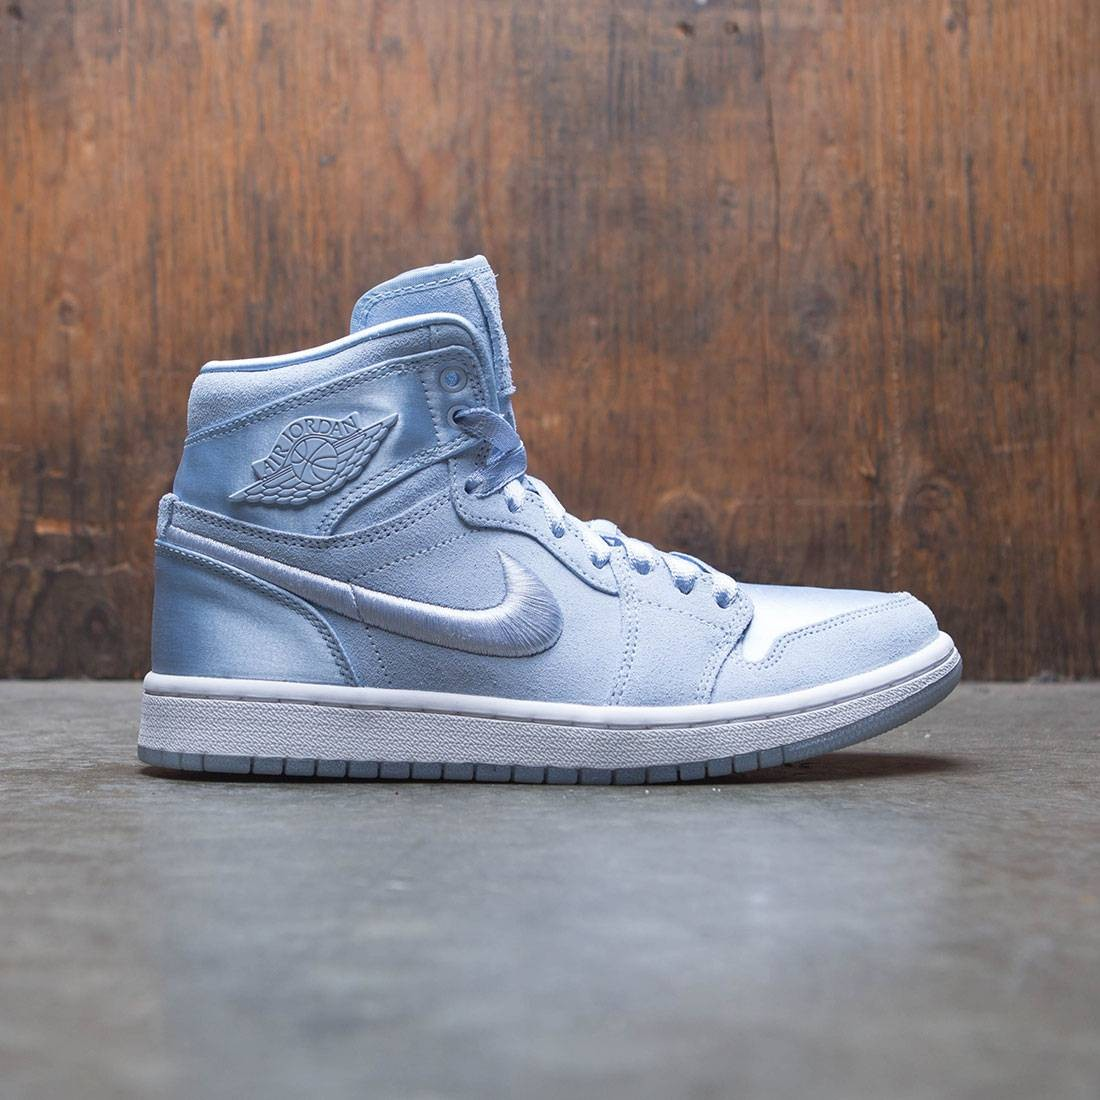 low priced d0521 d0bce jordan women air jordan 1 retro high summer of high hydrogen blue white  metallic gold